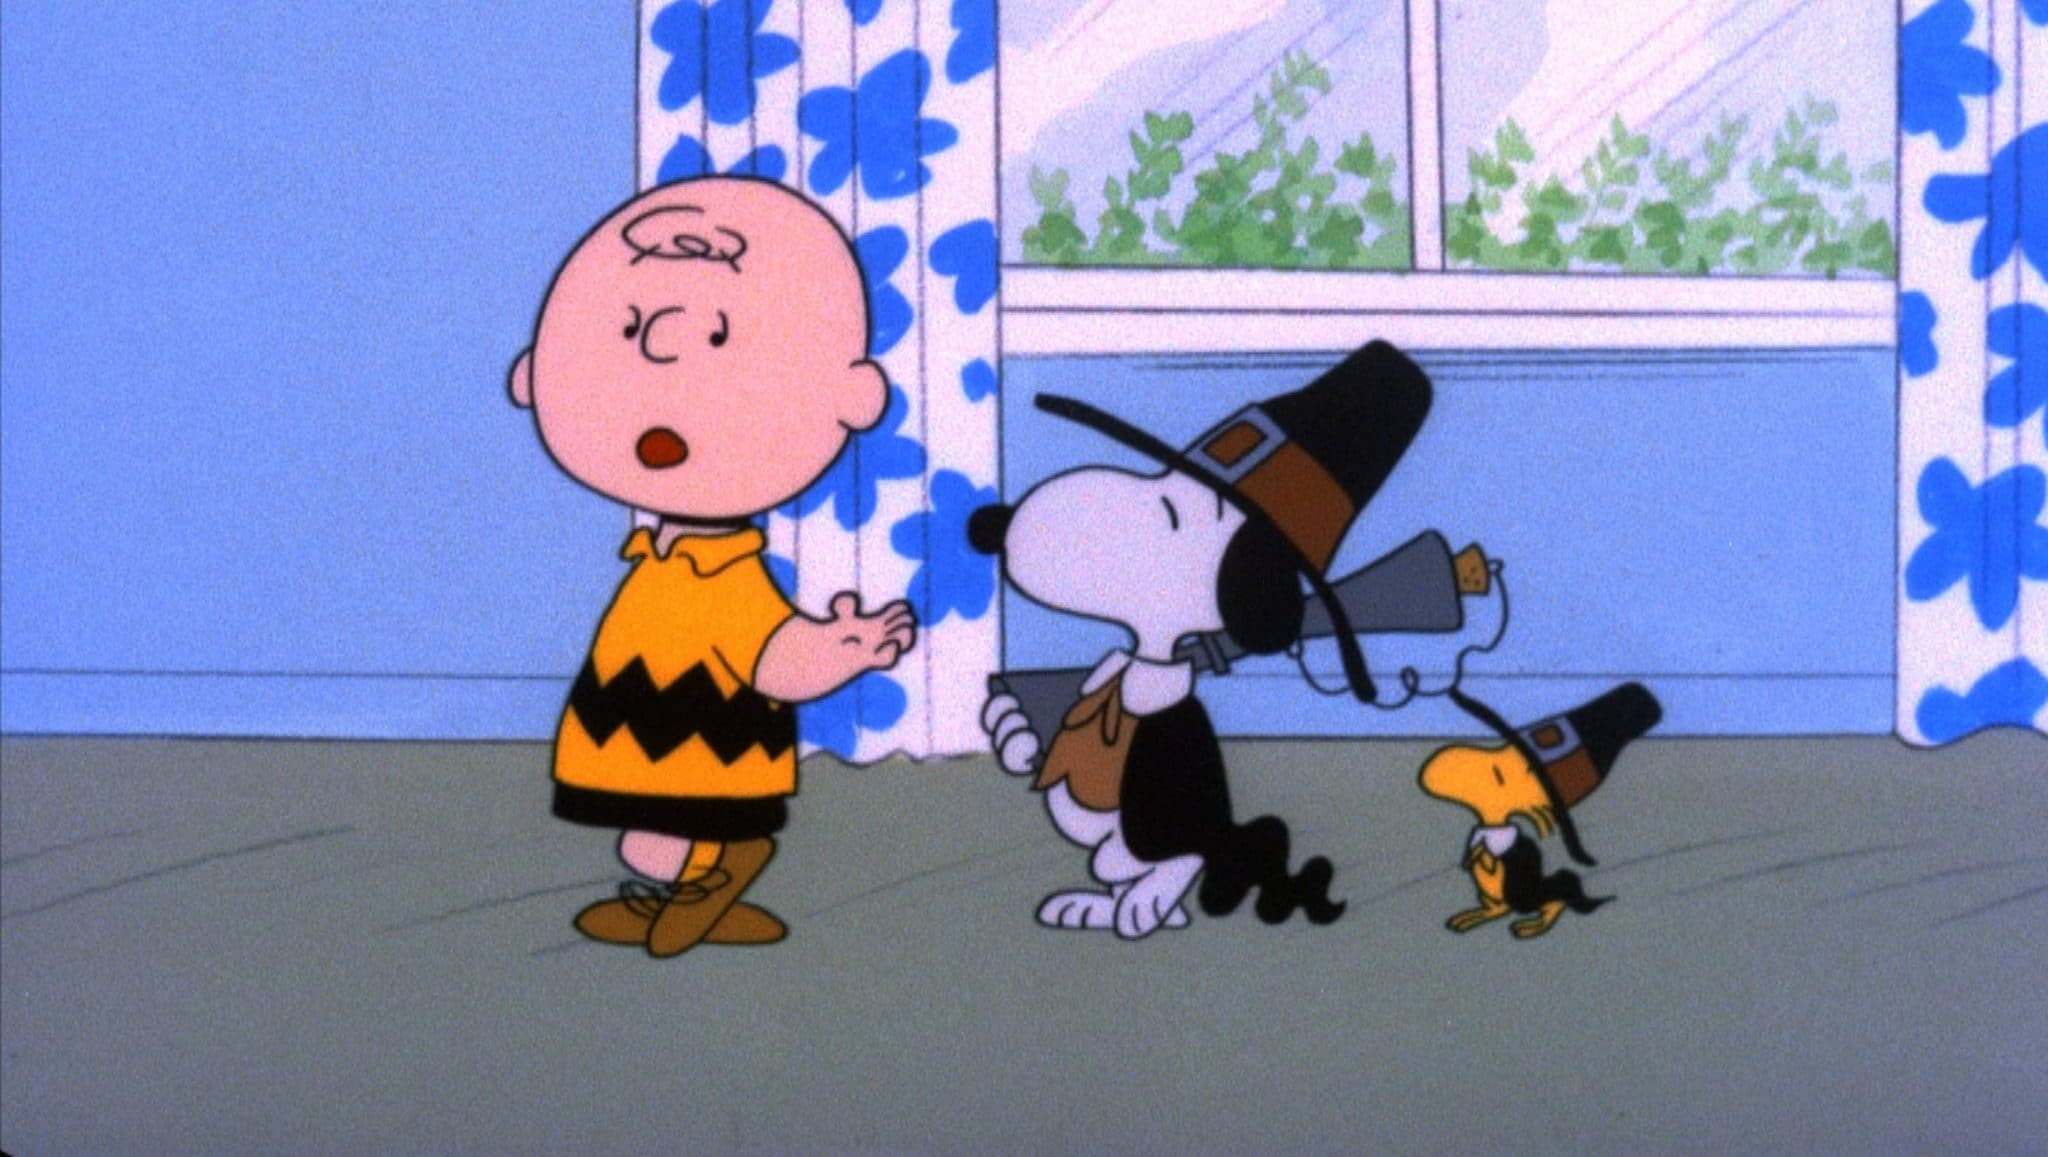 Charlie Brown, Snoopy and Woodstock in A Charlie Brown Thanksgiving